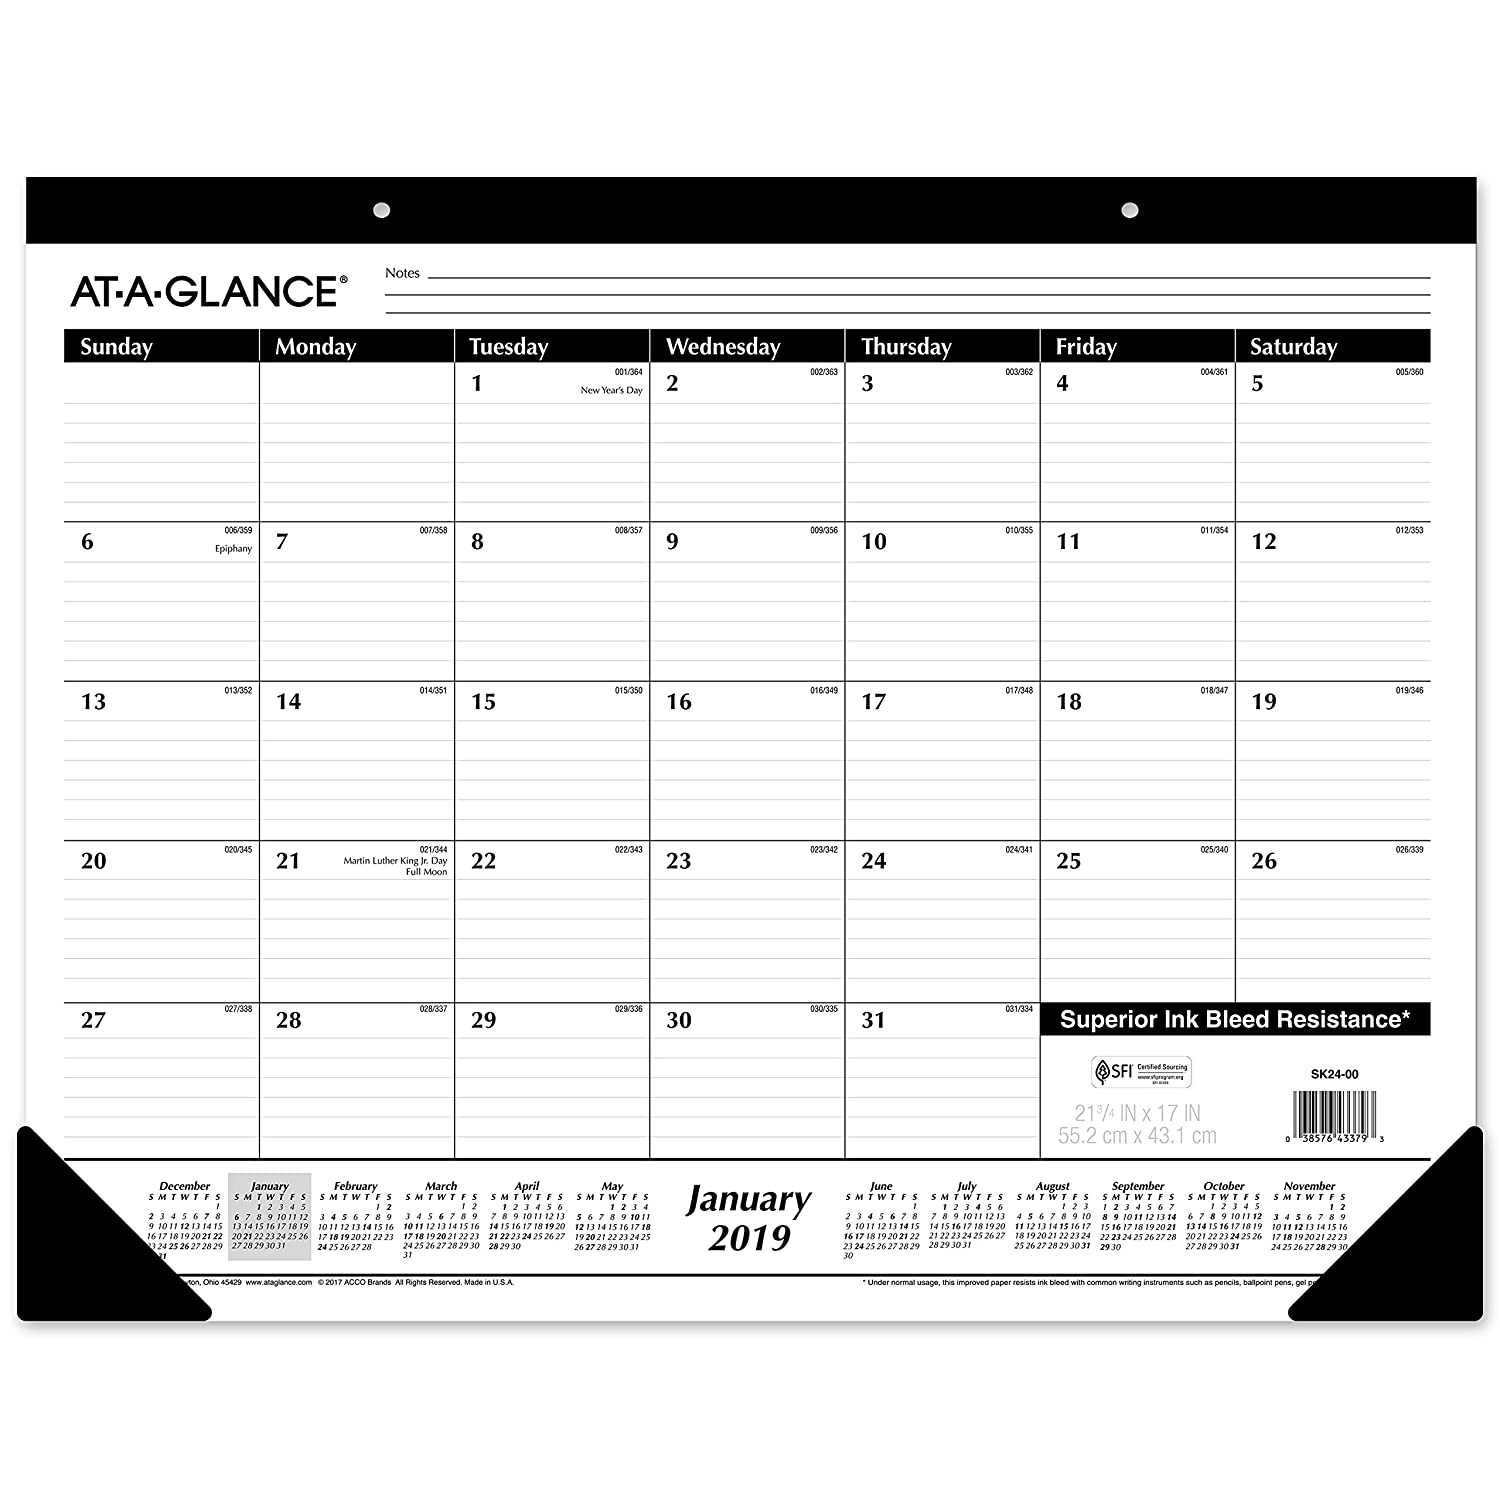 AT-A-GLANCE 2019 Monthly Desk Pad Calendar, 22 x 17, Standard, Ruled Blocks (SK2400) 22 x 17 ACCO Brands SK240019